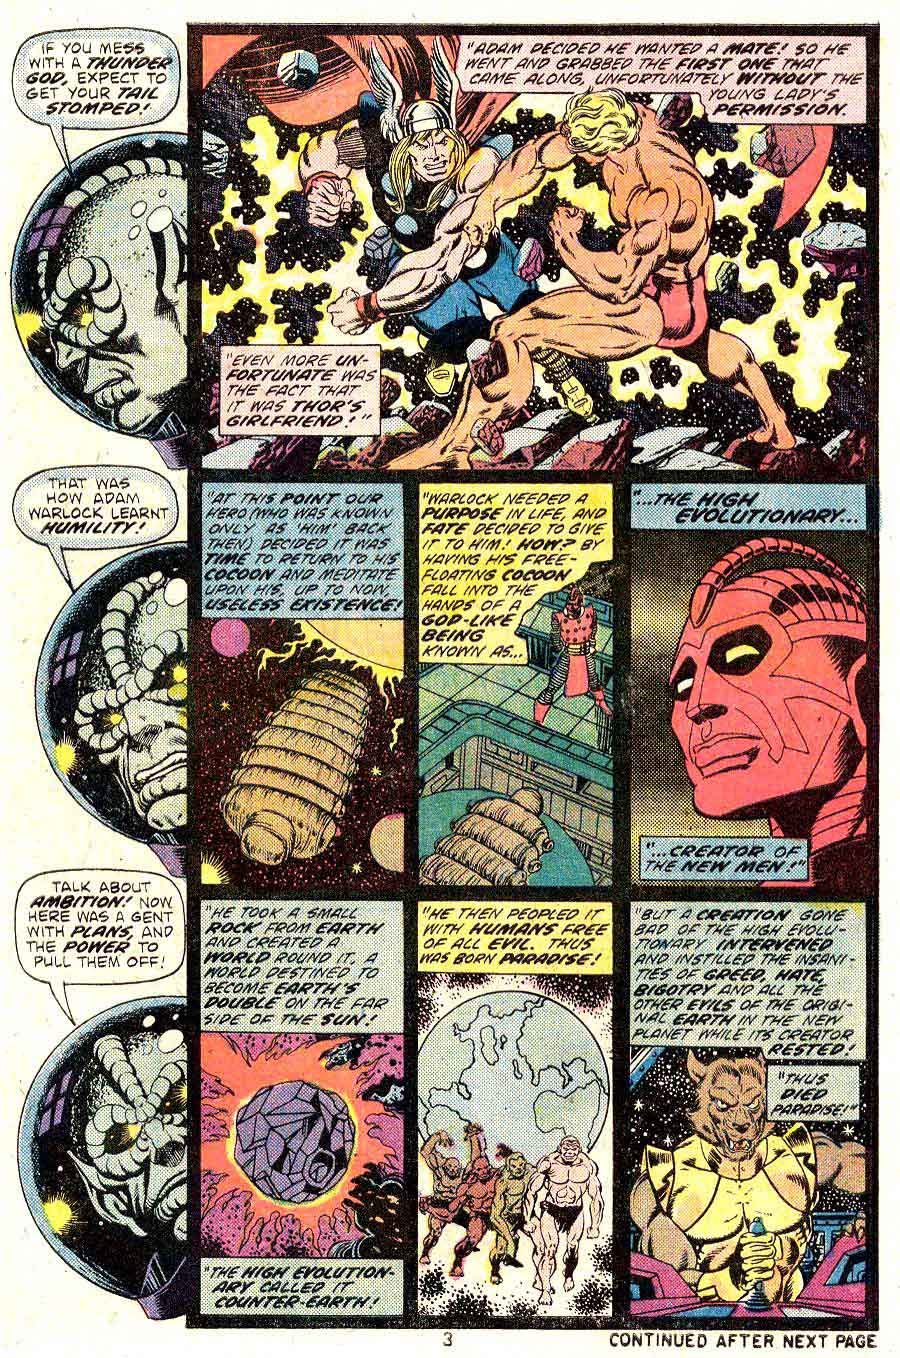 Strange Tales v1 #178 marvel warlock comic book page art by Jim Starlin